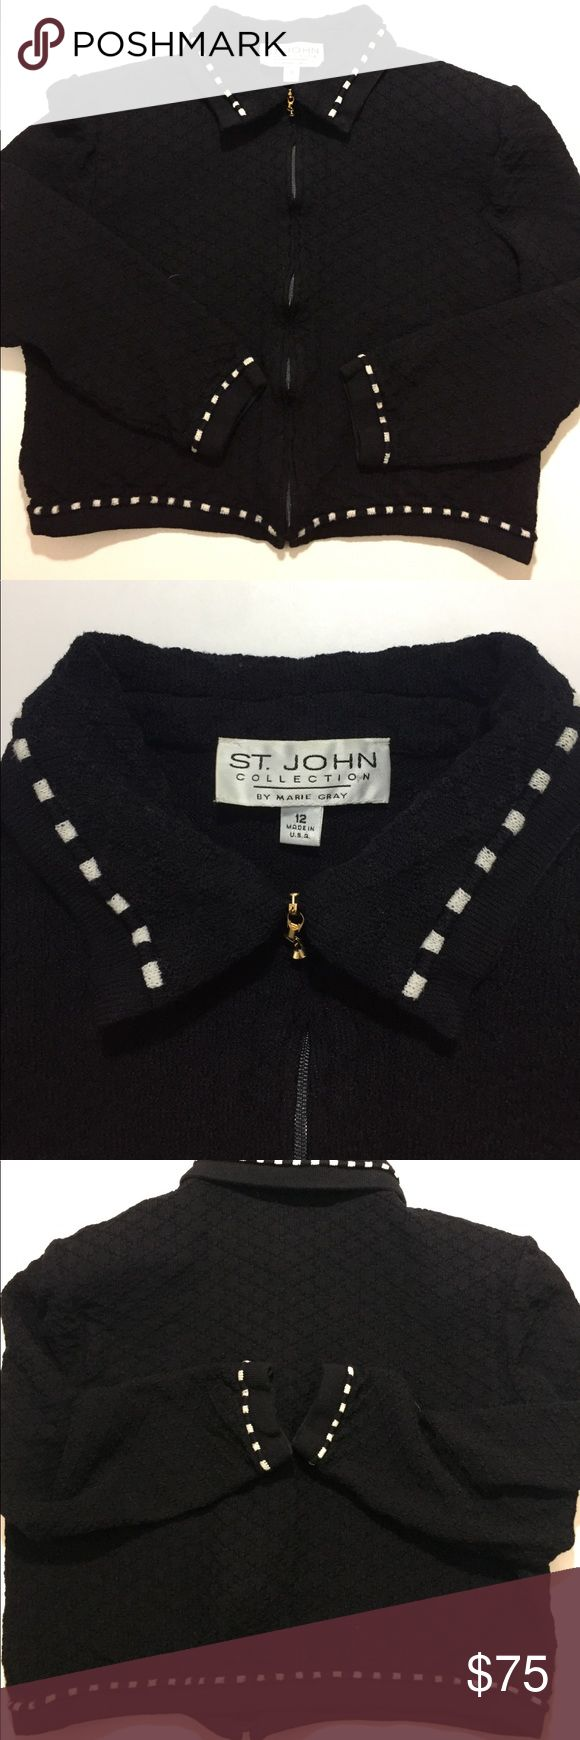 St. John Black and White Zip Up Jacket / Sweater St. John collection by Marie Gray. Black and White Jacket. Size 12. 16 inches across and 17 inches from top to bottom- lying flat. Zipper up the front. All in great condition. Shoulder pads shown in pics. St. John Collection Sweaters Cardigans